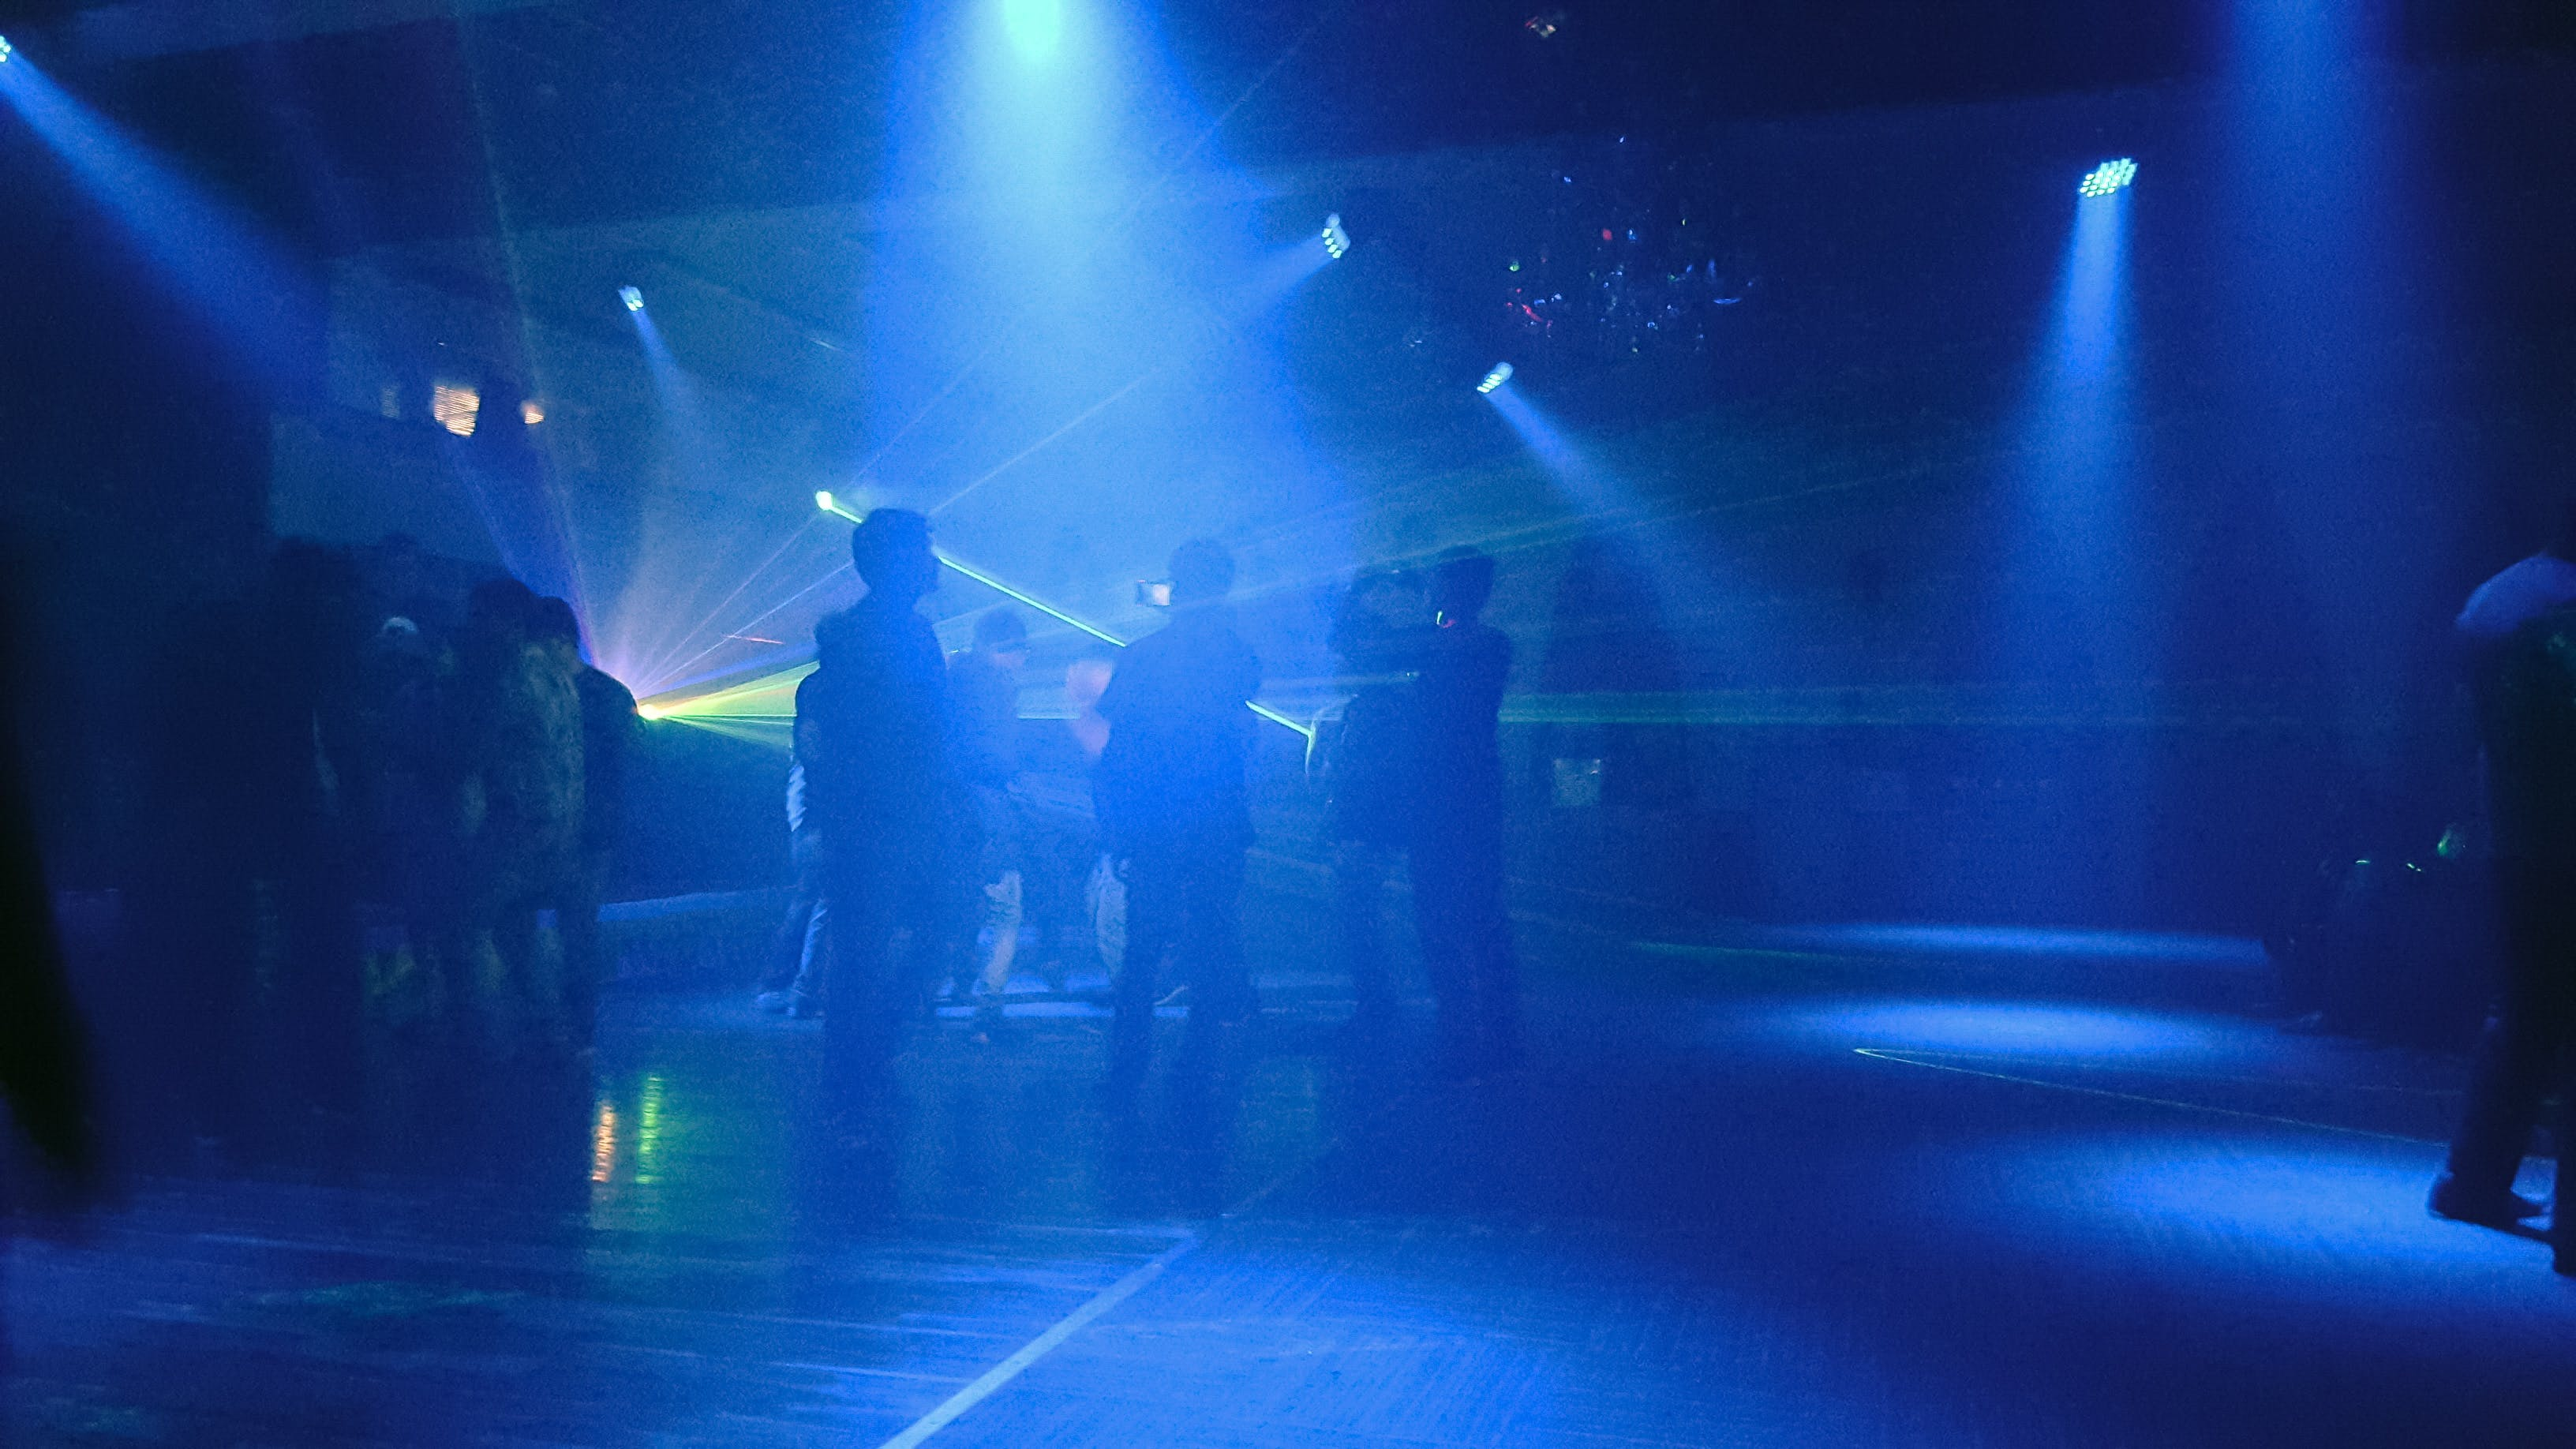 Free stock photo of afterparty, dance, Dancefloor, Disconight